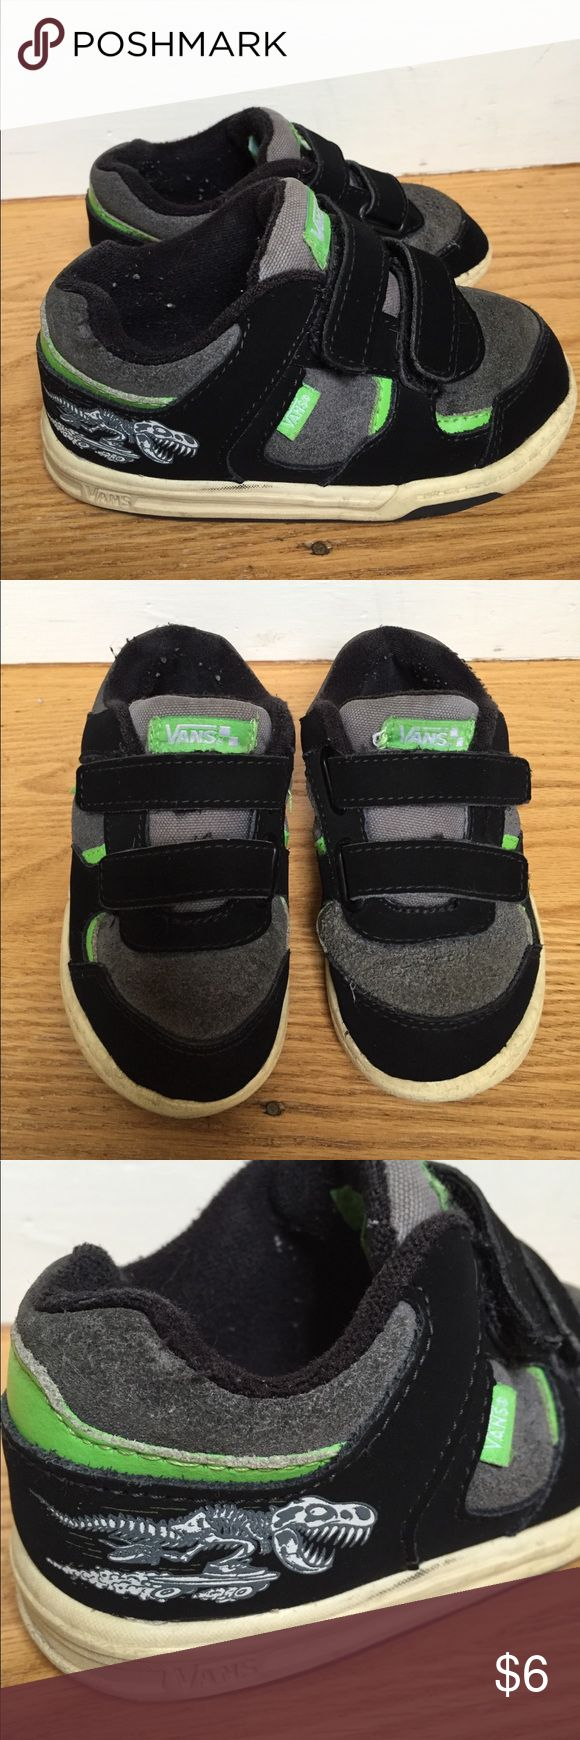 Skate shoes knox city - Vans Boys Size Vans Velcro Sneakers With Skateboarding Dinosaur Size Well Loved But Still Good Shows In Price